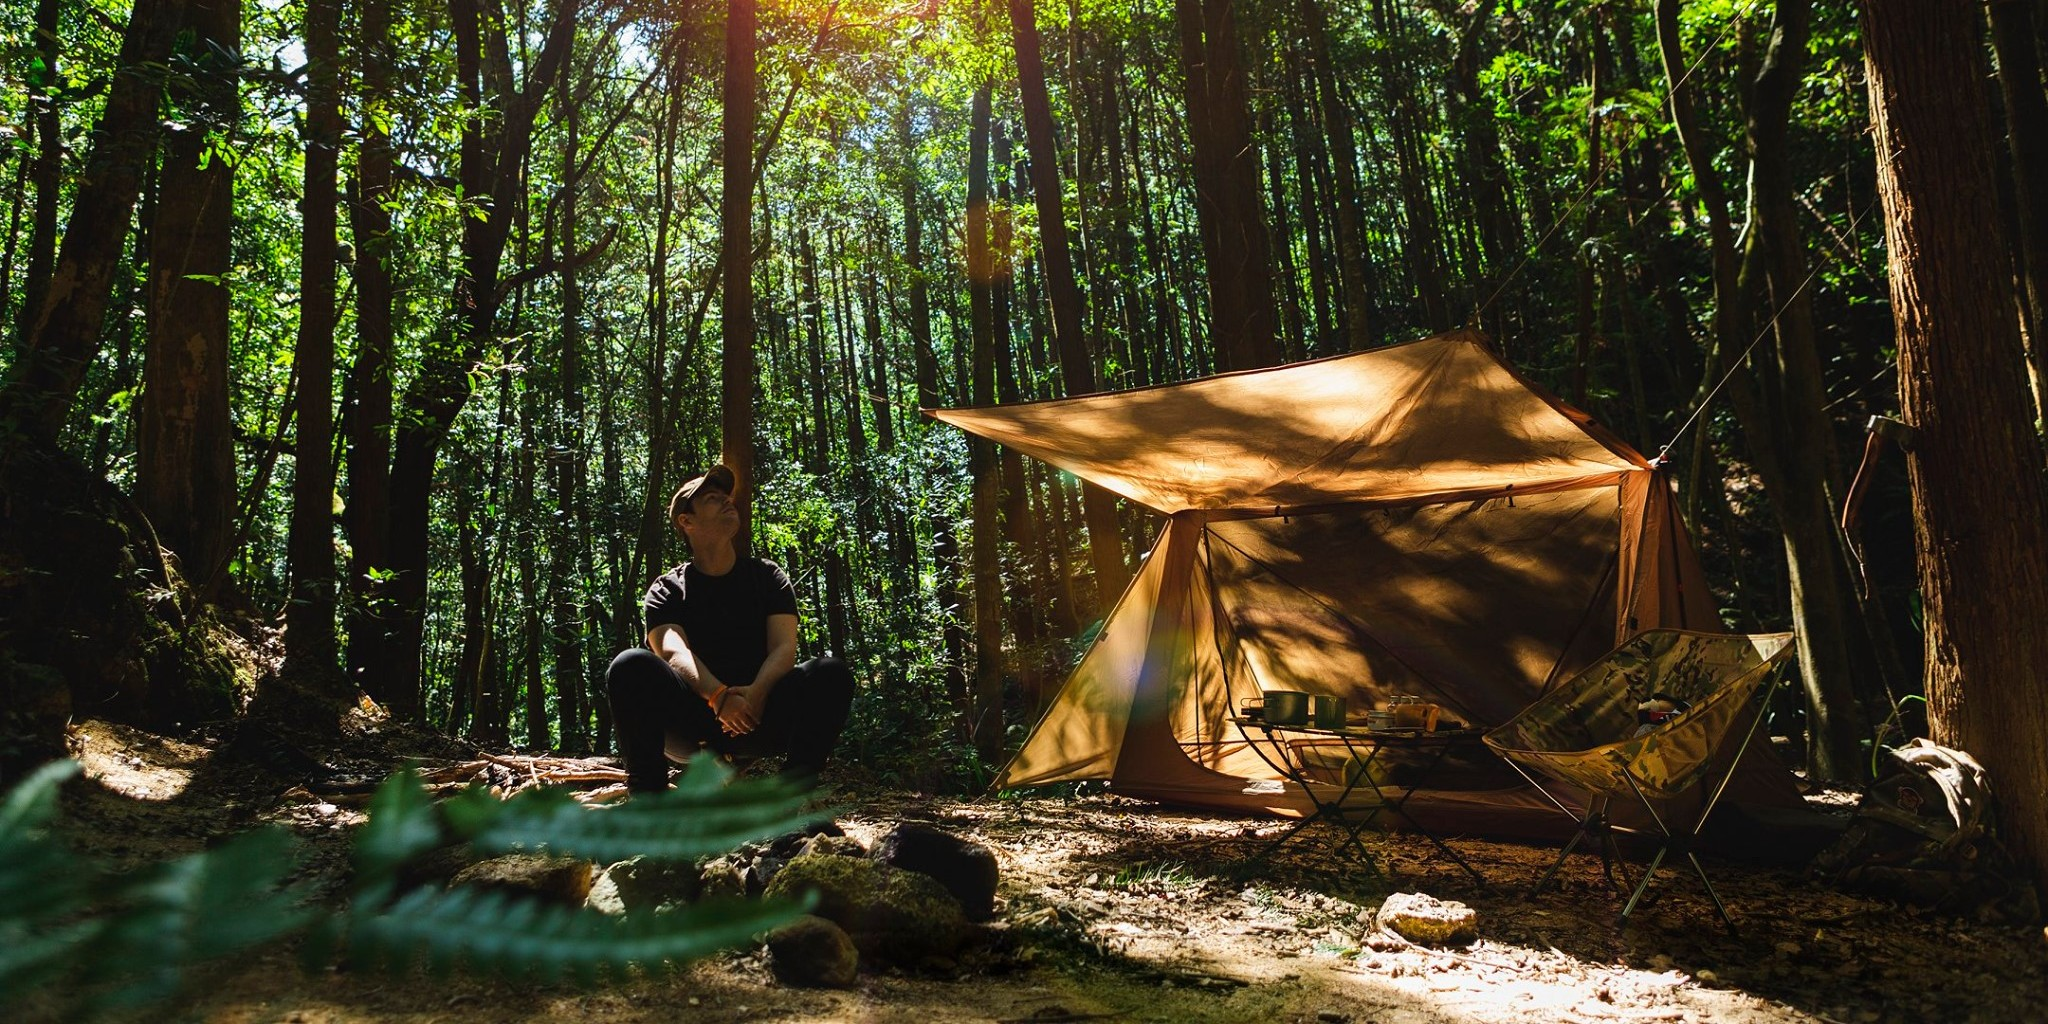 5 best backcountry hunting tents 2021: carry light, blend in and stay sheltered